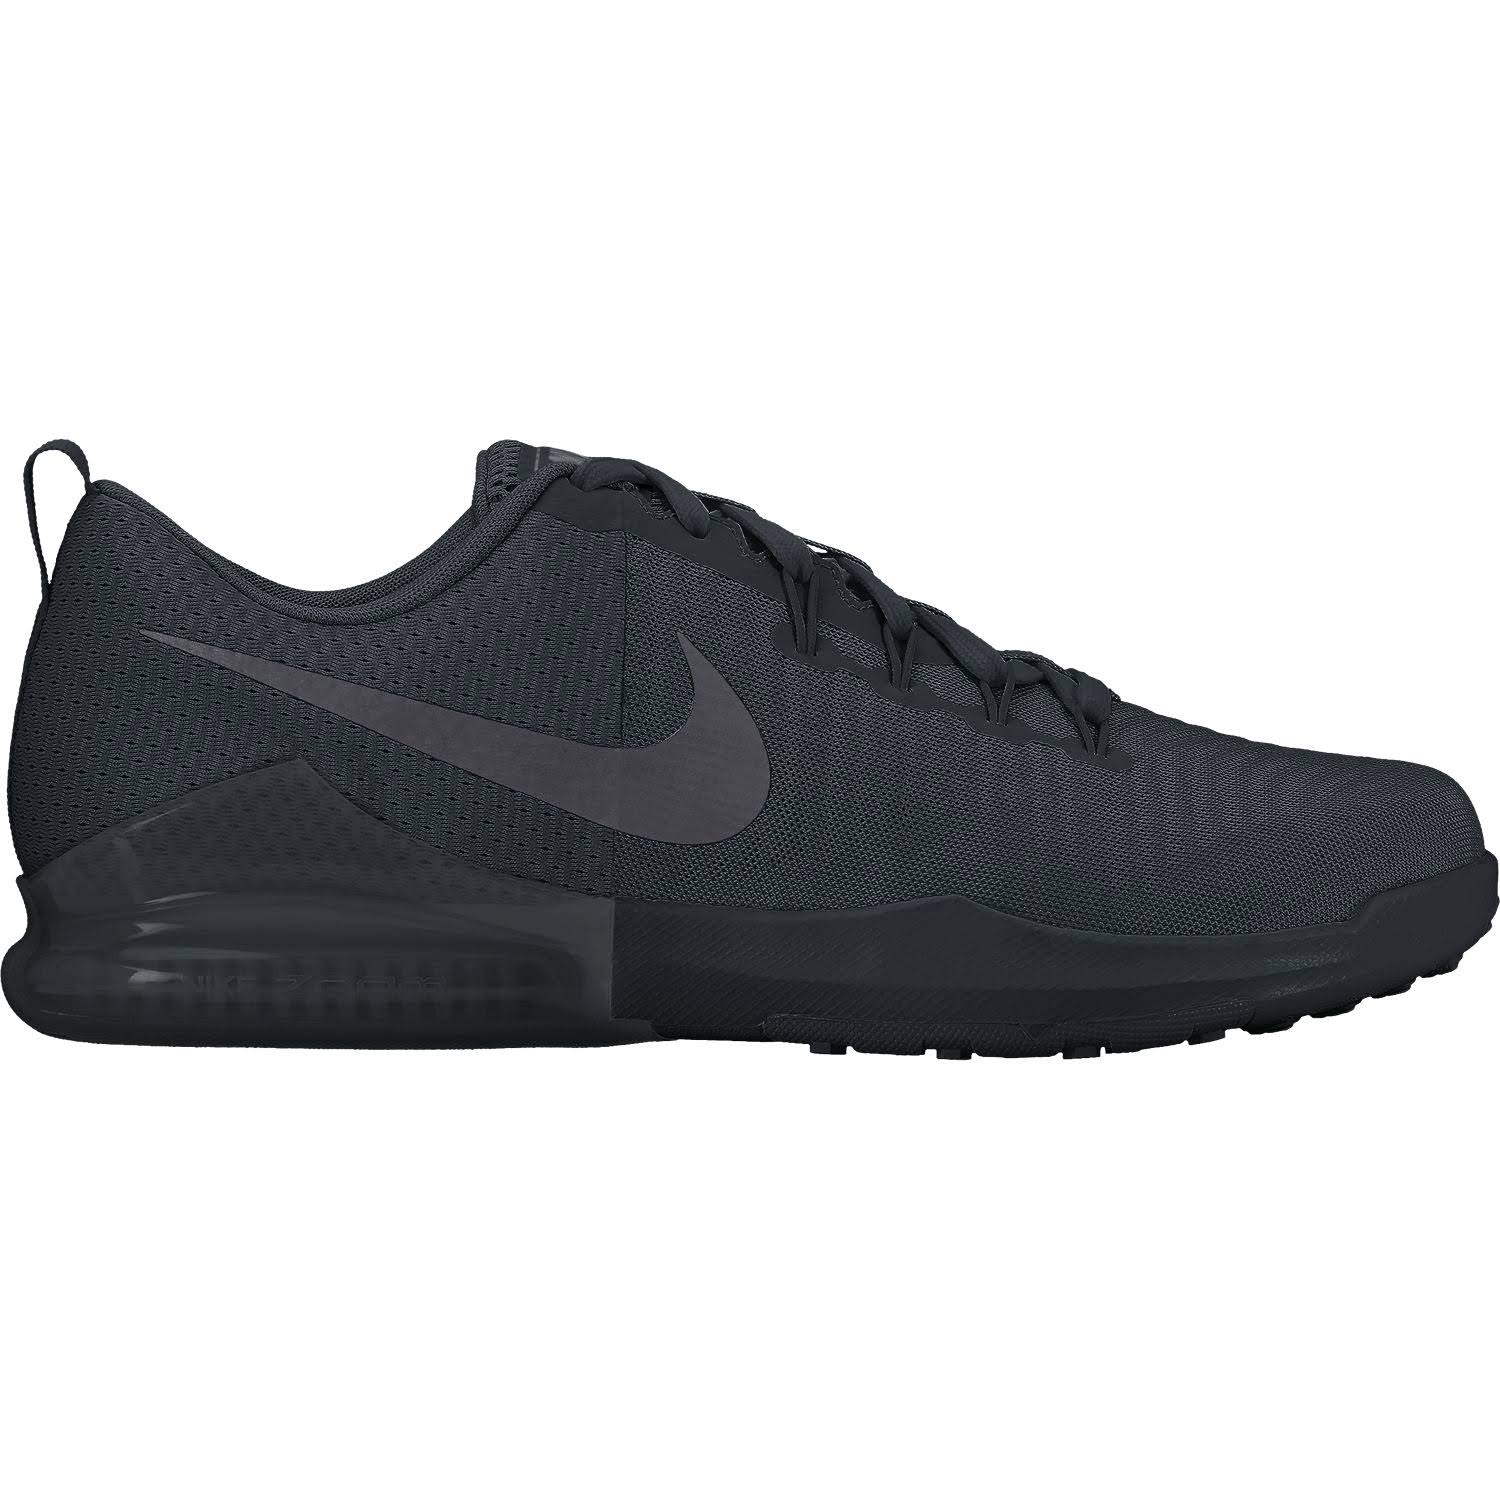 Train Nike 852438 010 Zoom Shoes Running Action HH7qtfr